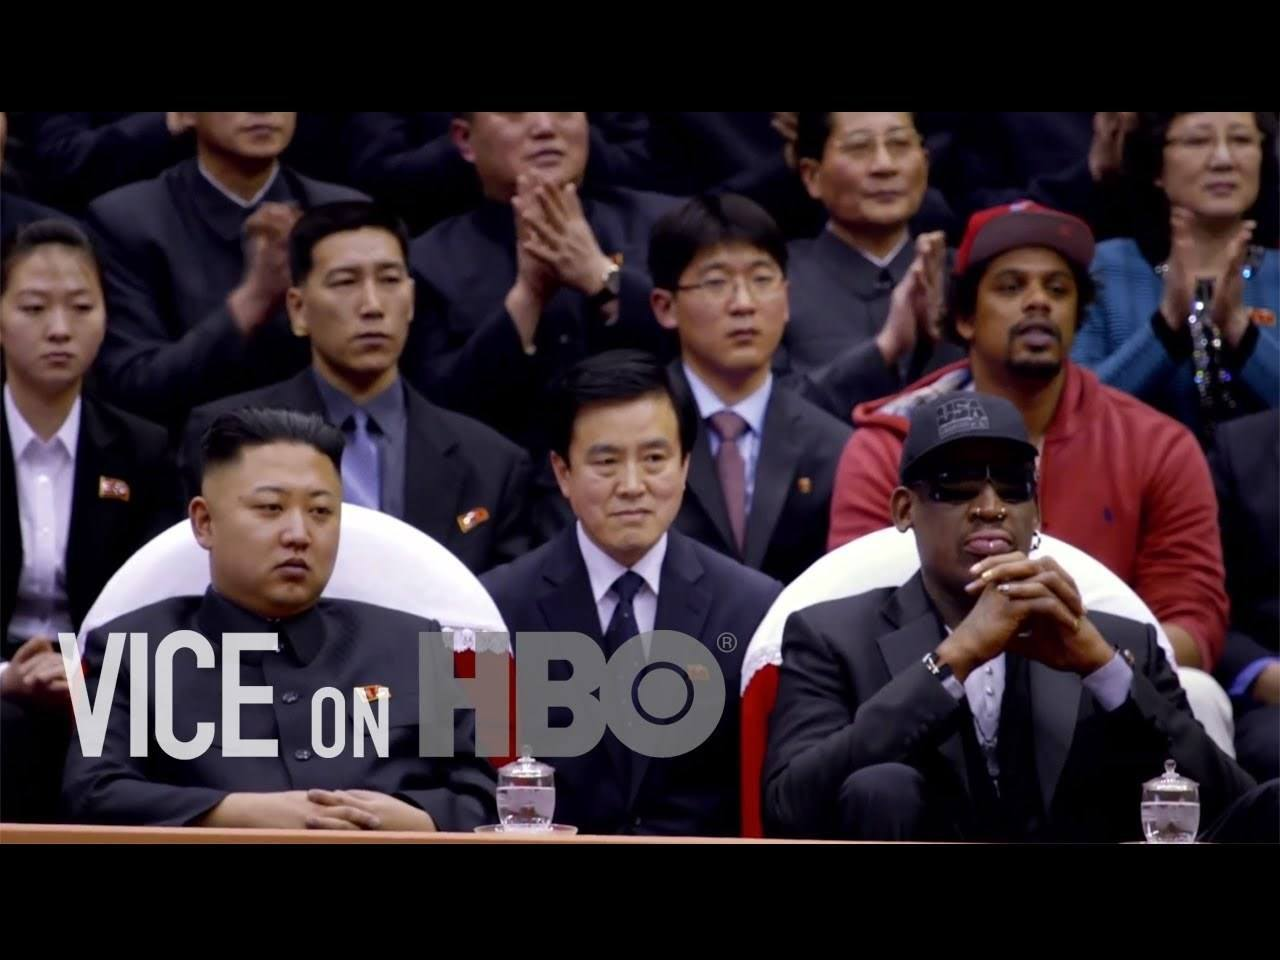 the orwellian state of north korea When george orwell wrote 1984, he created what is perhaps the archetypal text  of dystopian fiction years later, we see how north korea measures up to the  book  society exists in a constant state of war in 1984, the party.